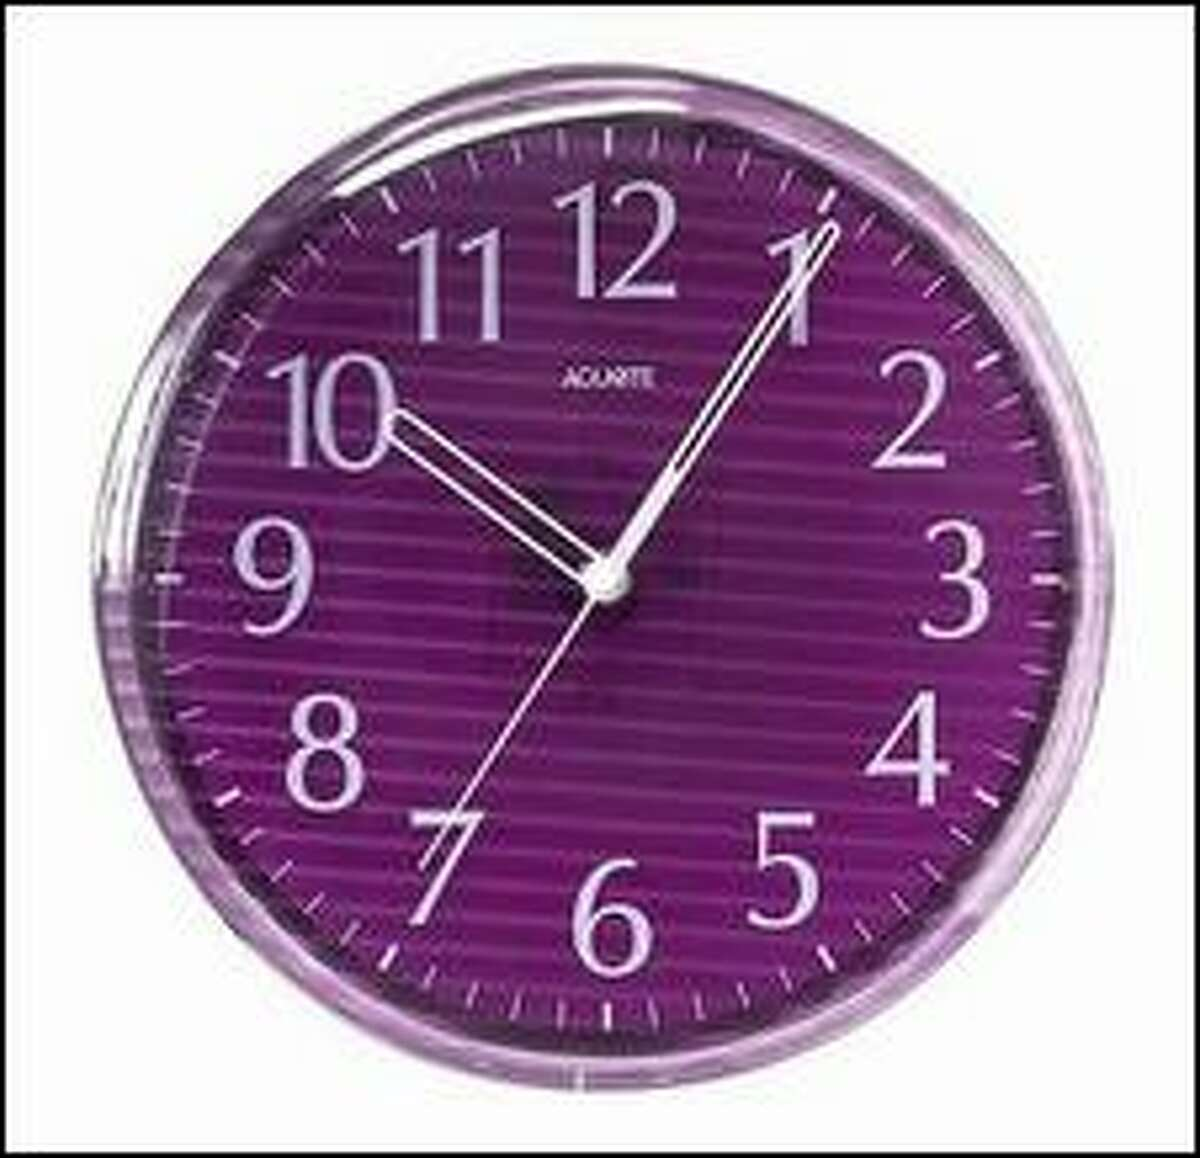 This clock sells for $28.85 at The Purple Store.